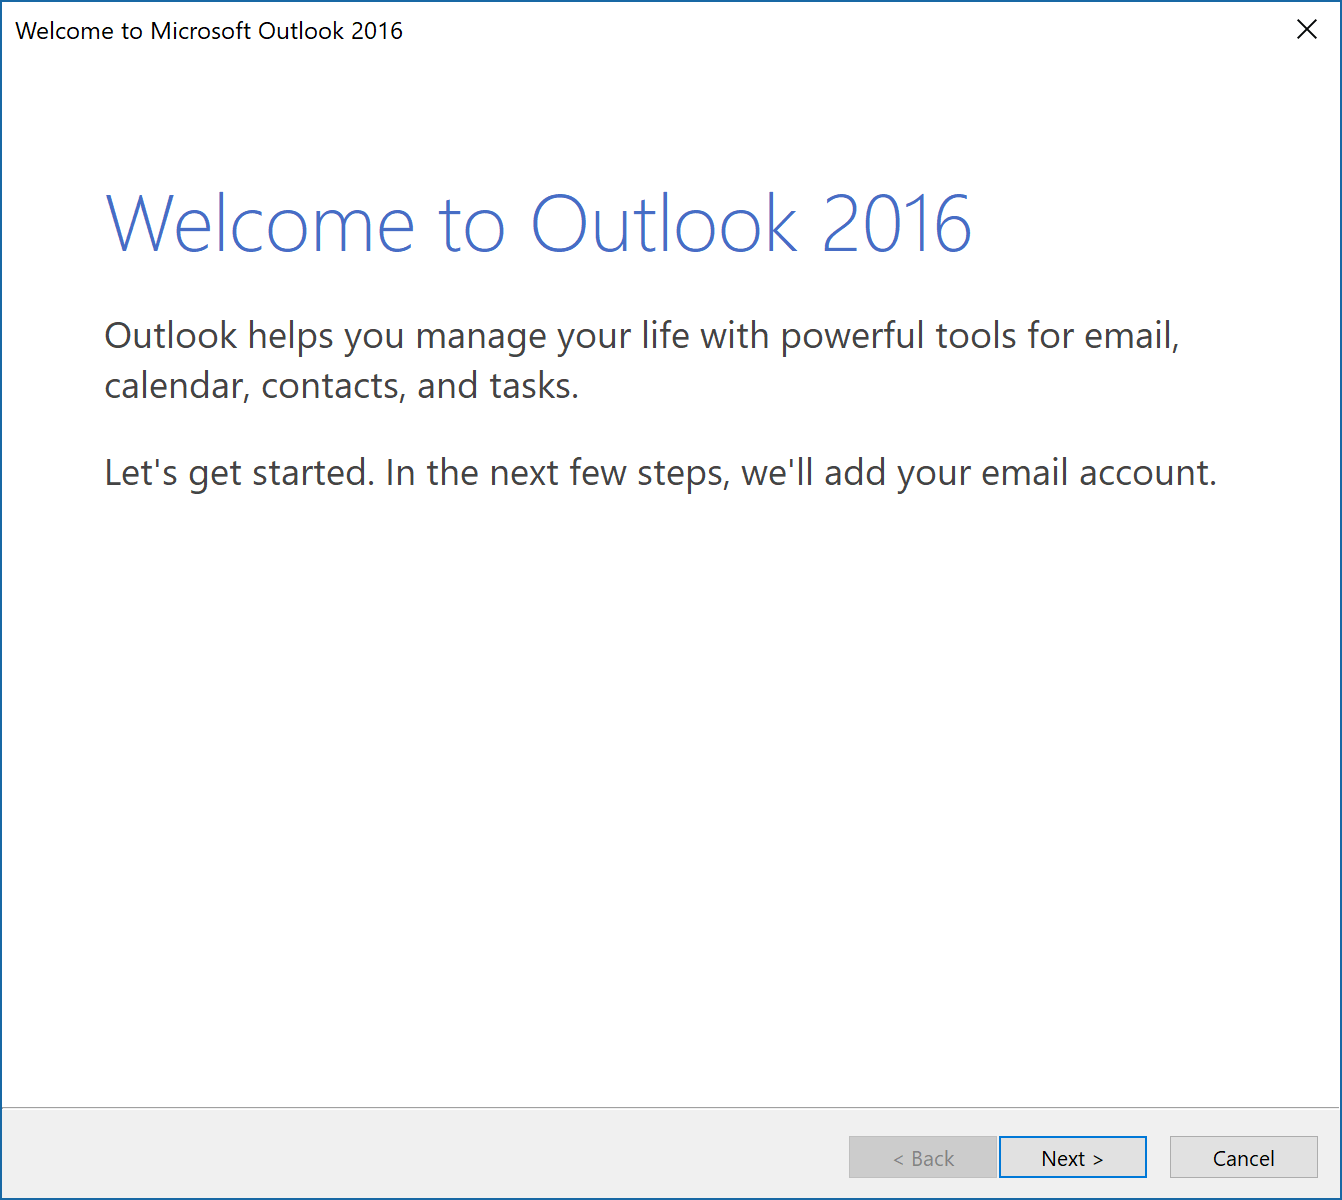 How to set up a POP/IMAP email account in Microsoft Outlook 2016